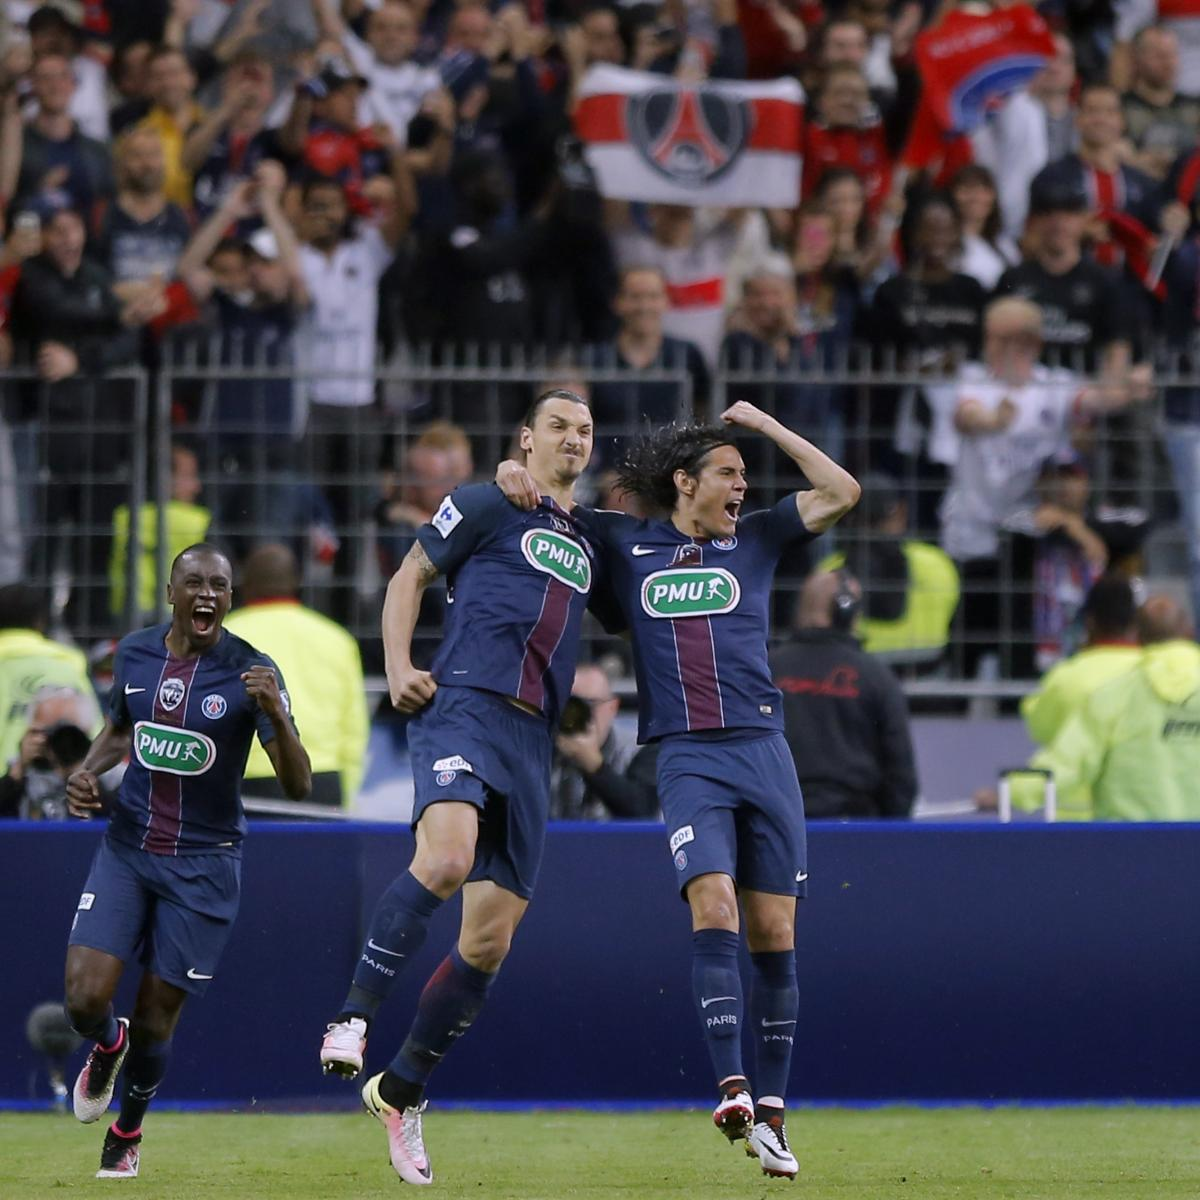 Arsenal Vs Psg Score Reaction From 2016 Champions: Coupe De France Final 2016: Score, Reaction From PSG Vs